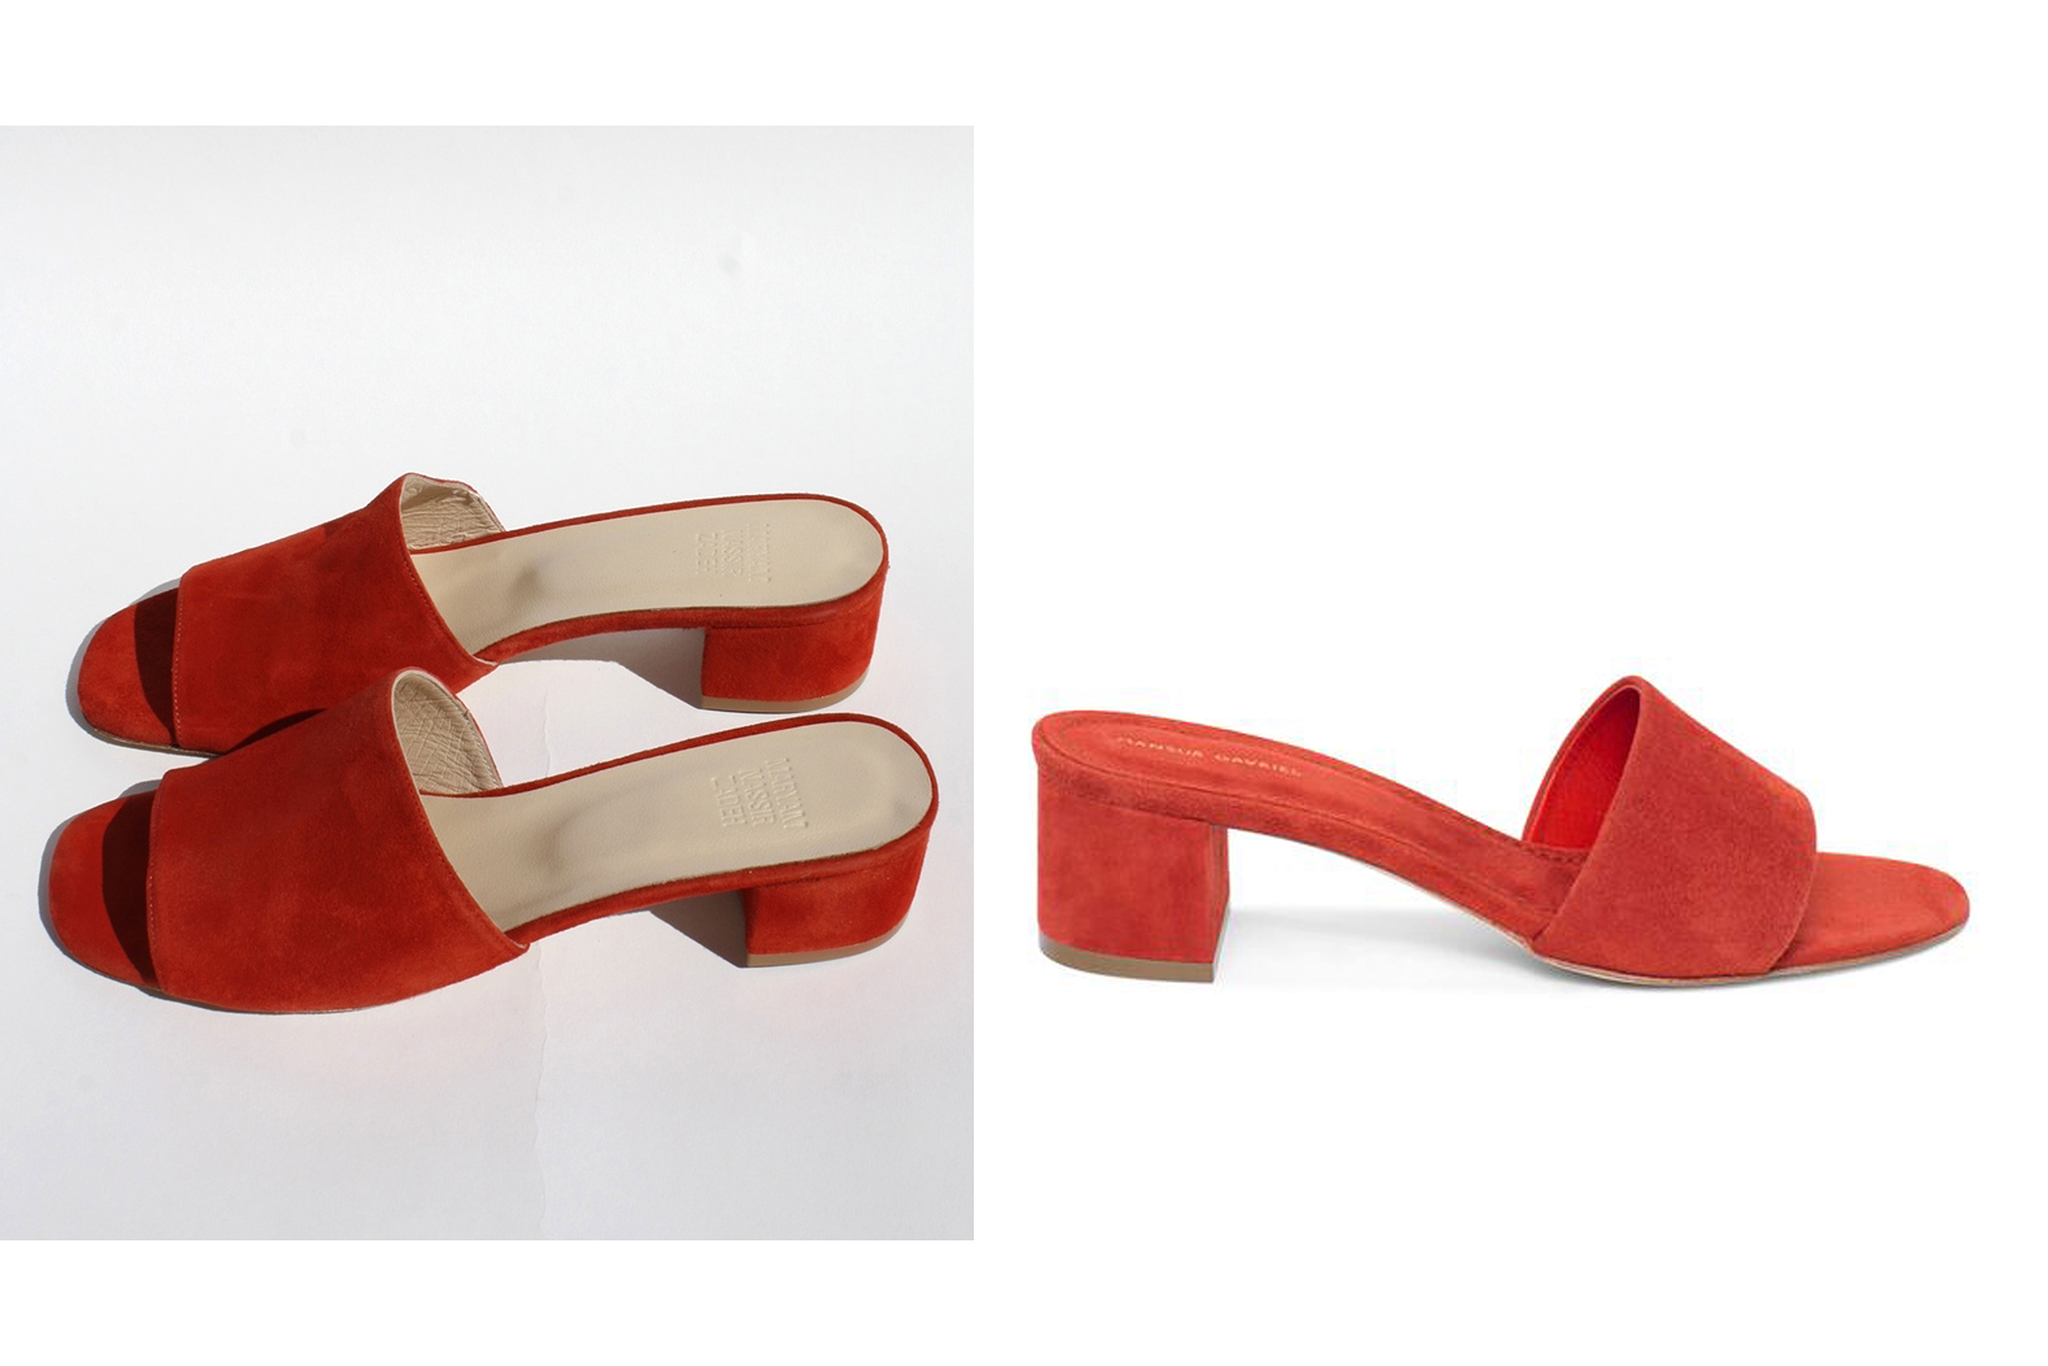 Sandals by Maryam Nassir Zadeh (left), and Mansur Gavriel (right).